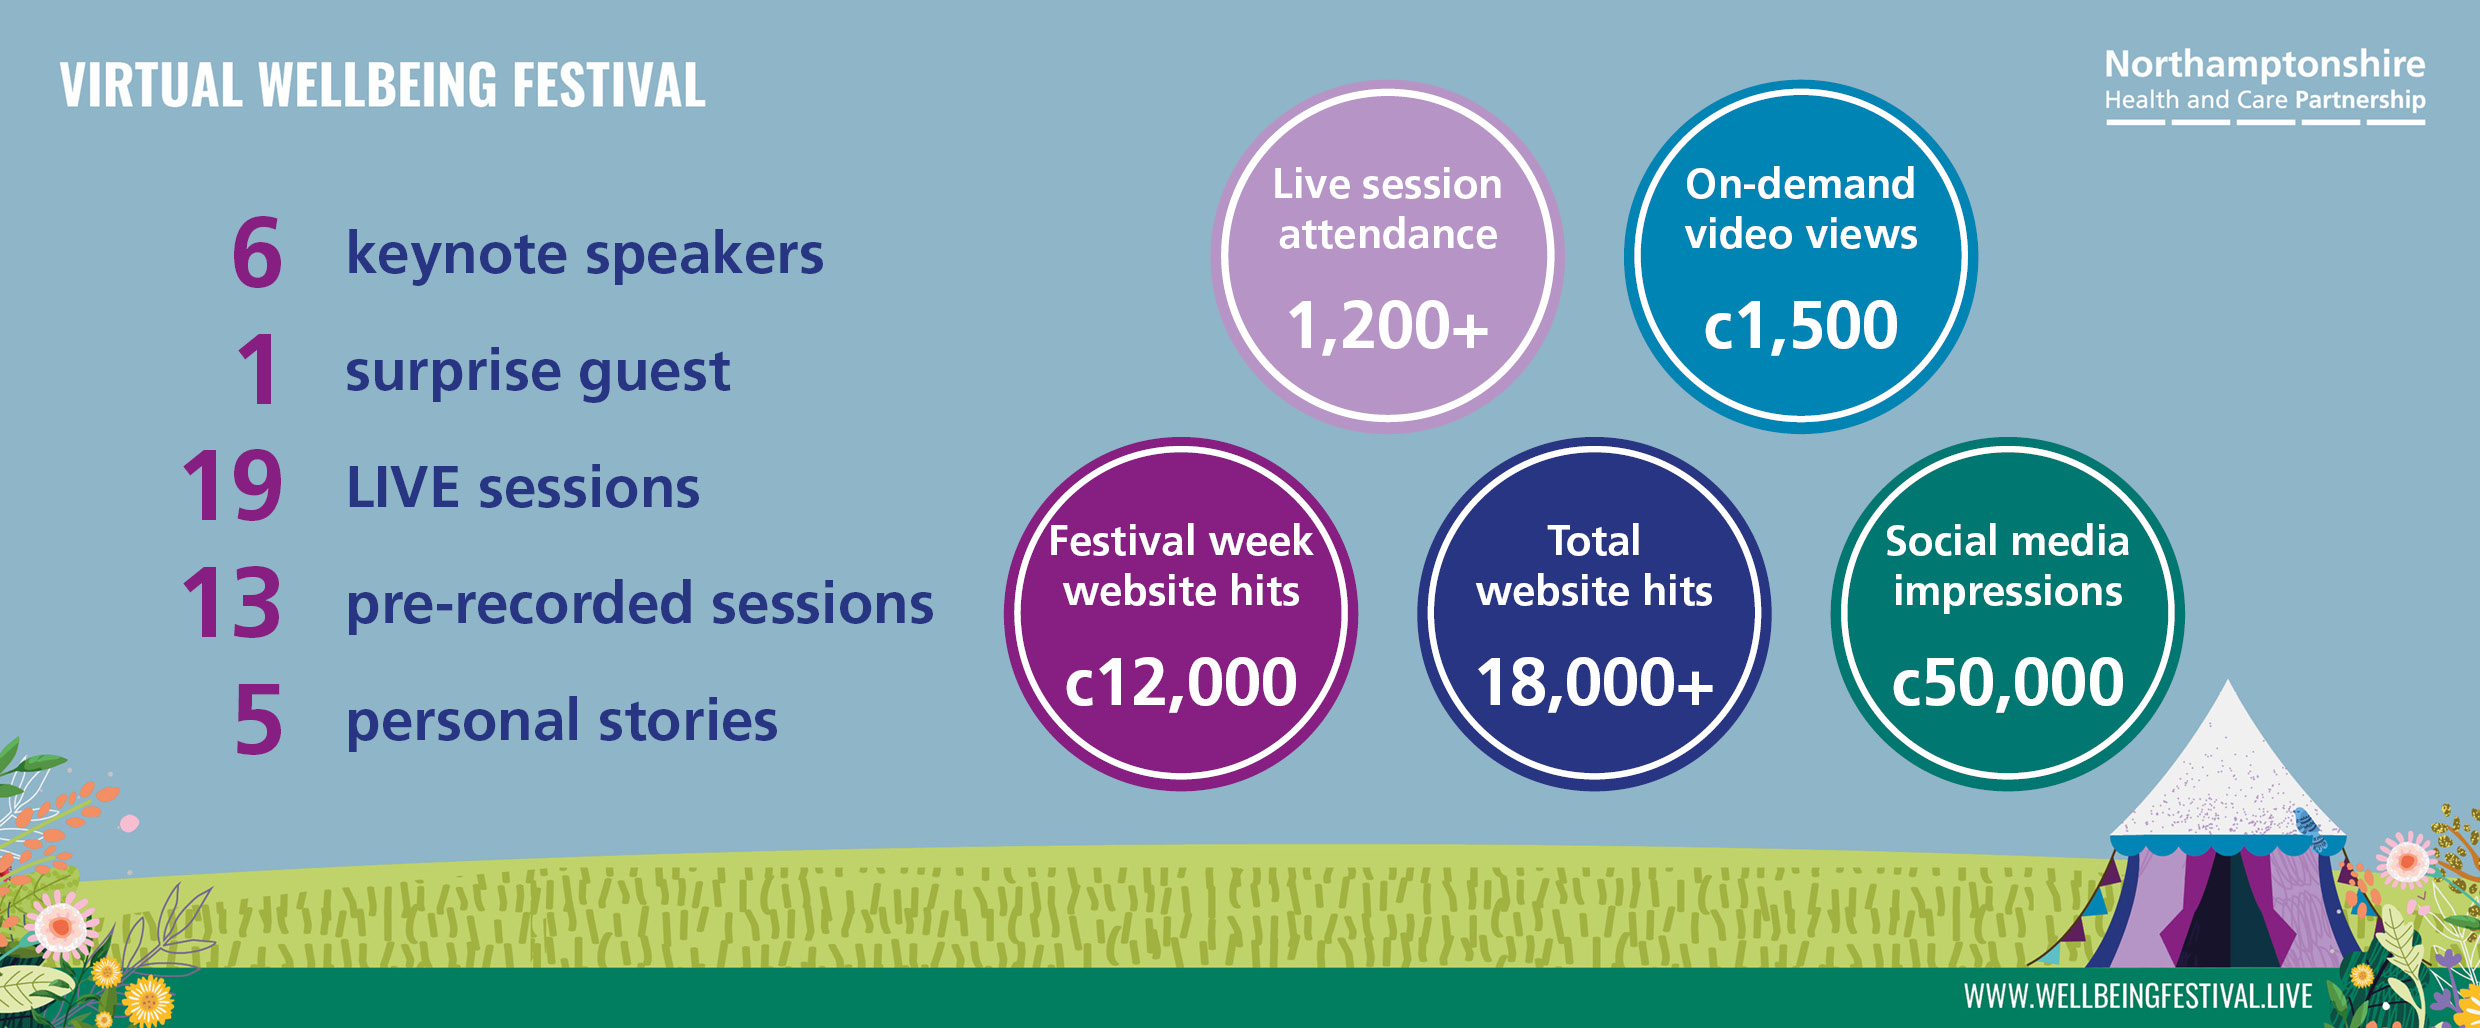 Facts and figures from this year's Virtual Wellbeing Festival